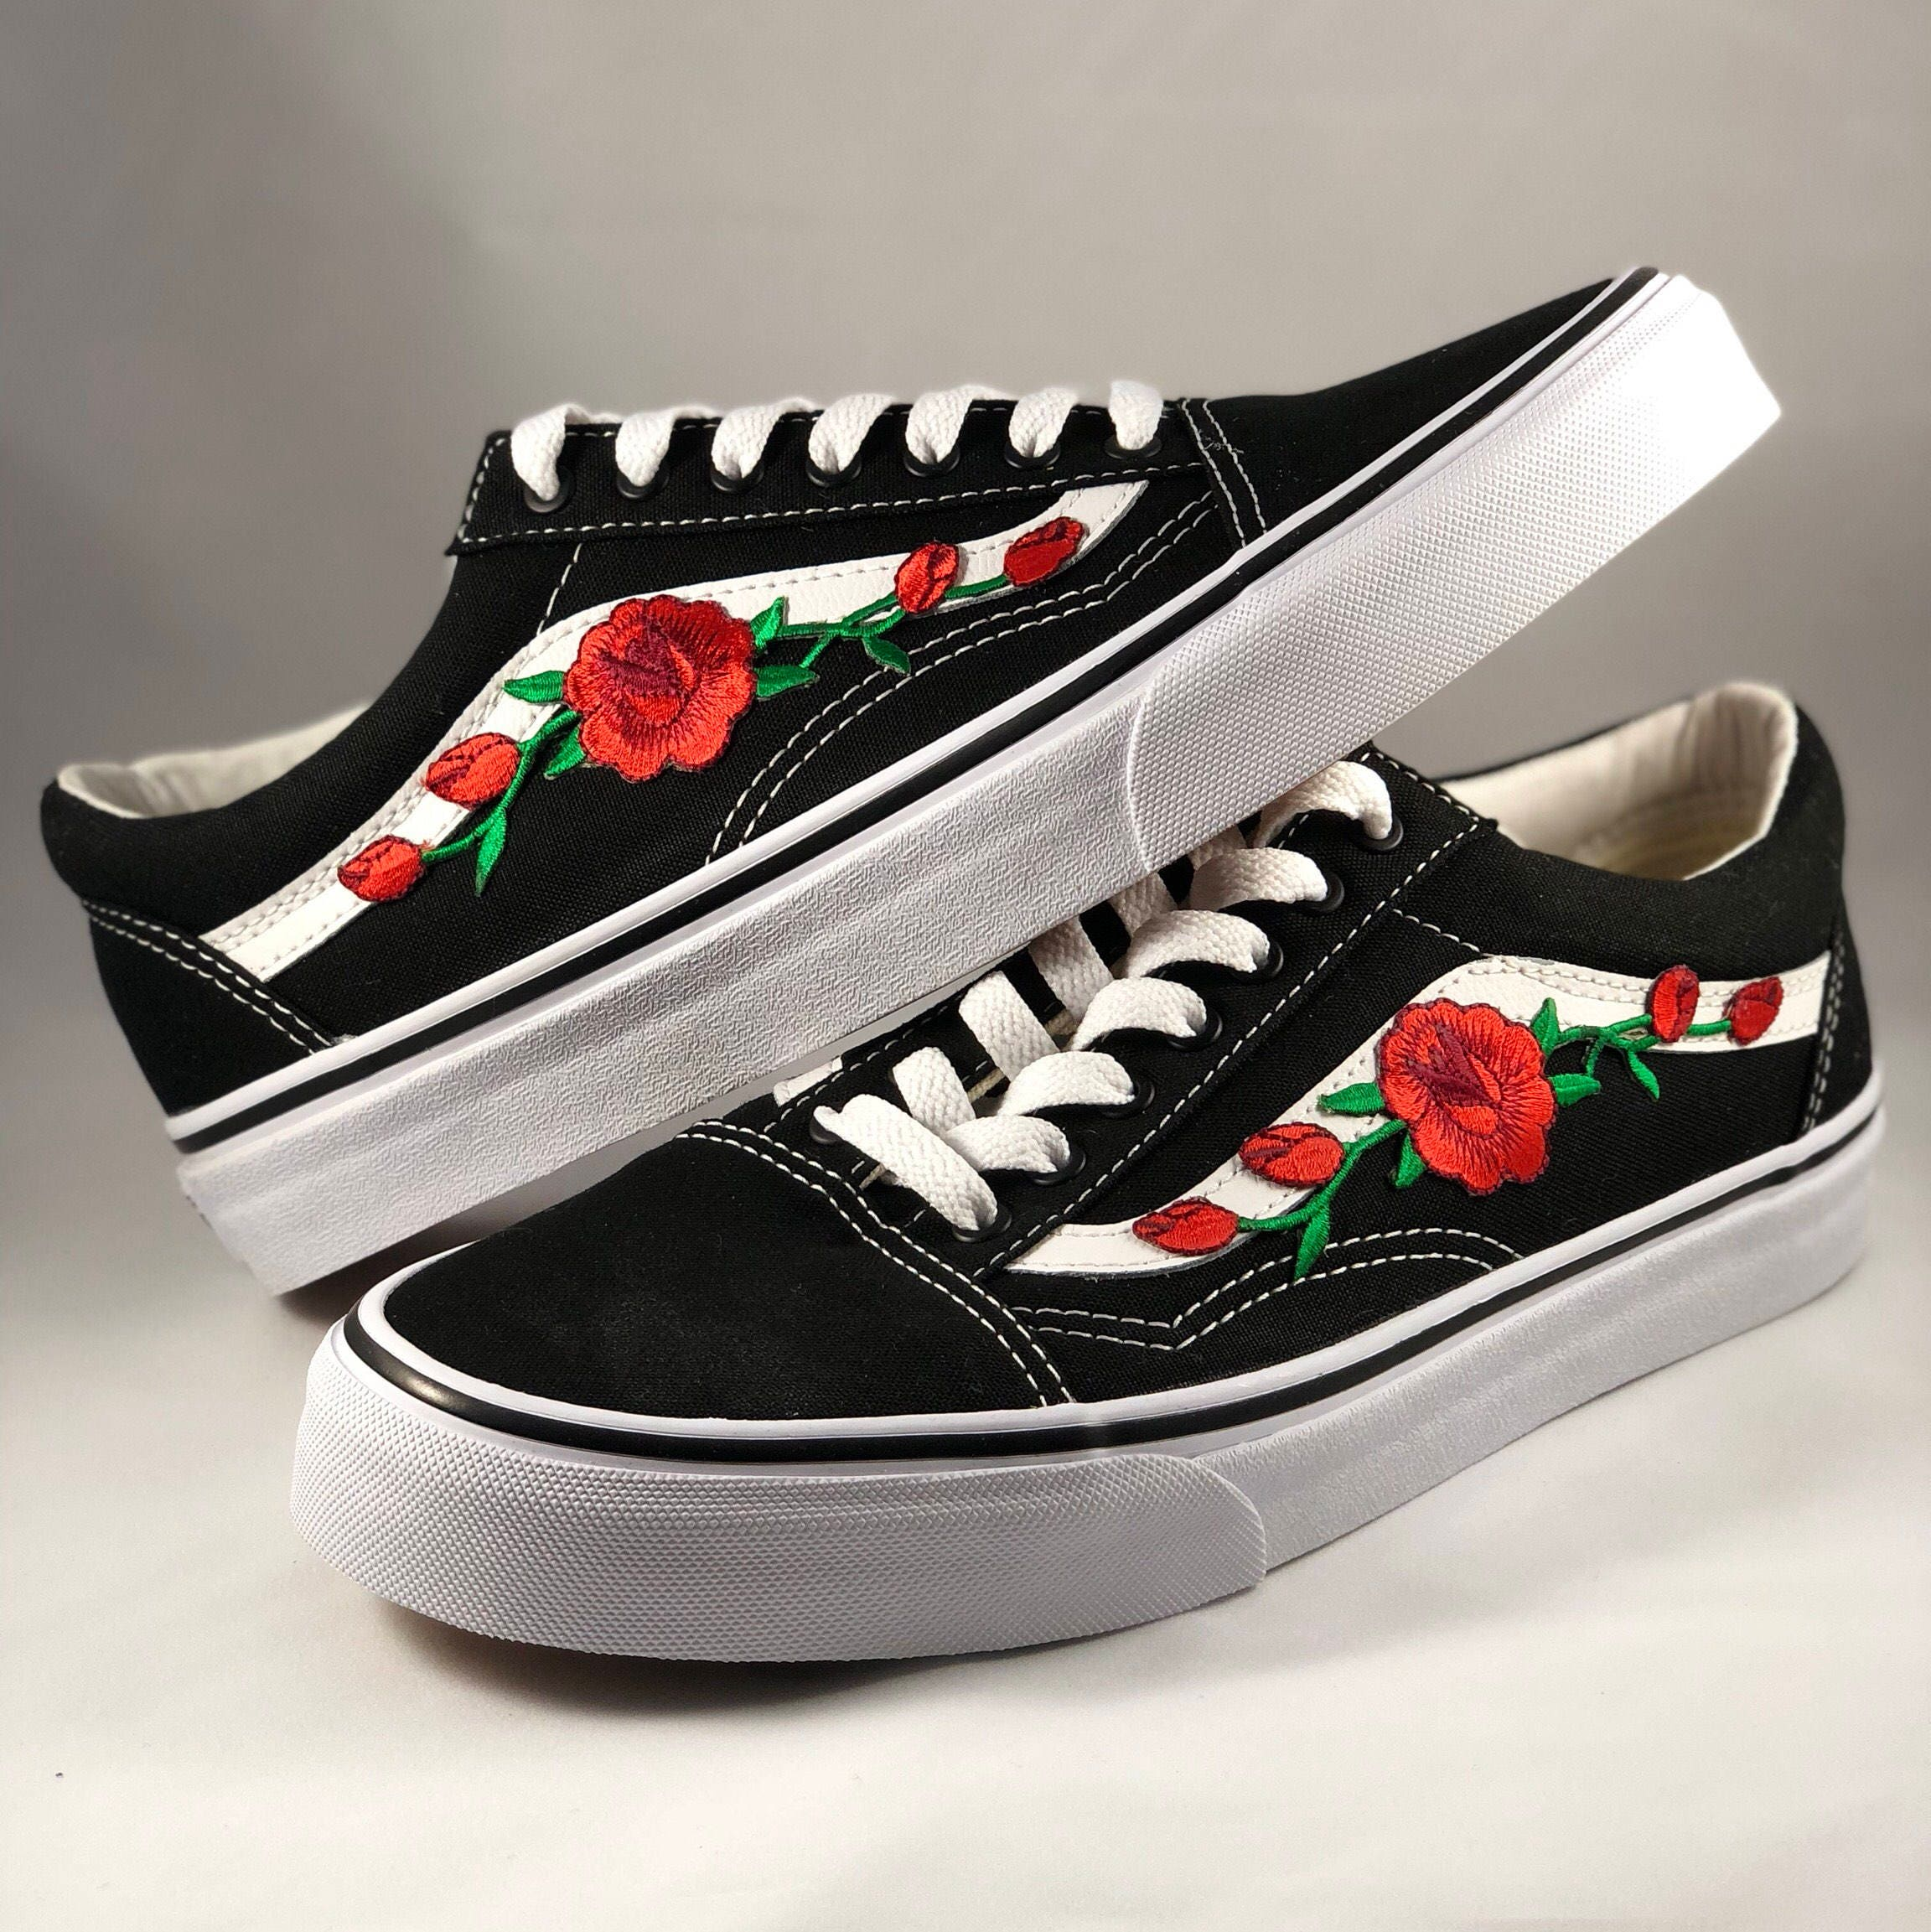 rose vans old skool rose vans women womens sneakers rose. Black Bedroom Furniture Sets. Home Design Ideas